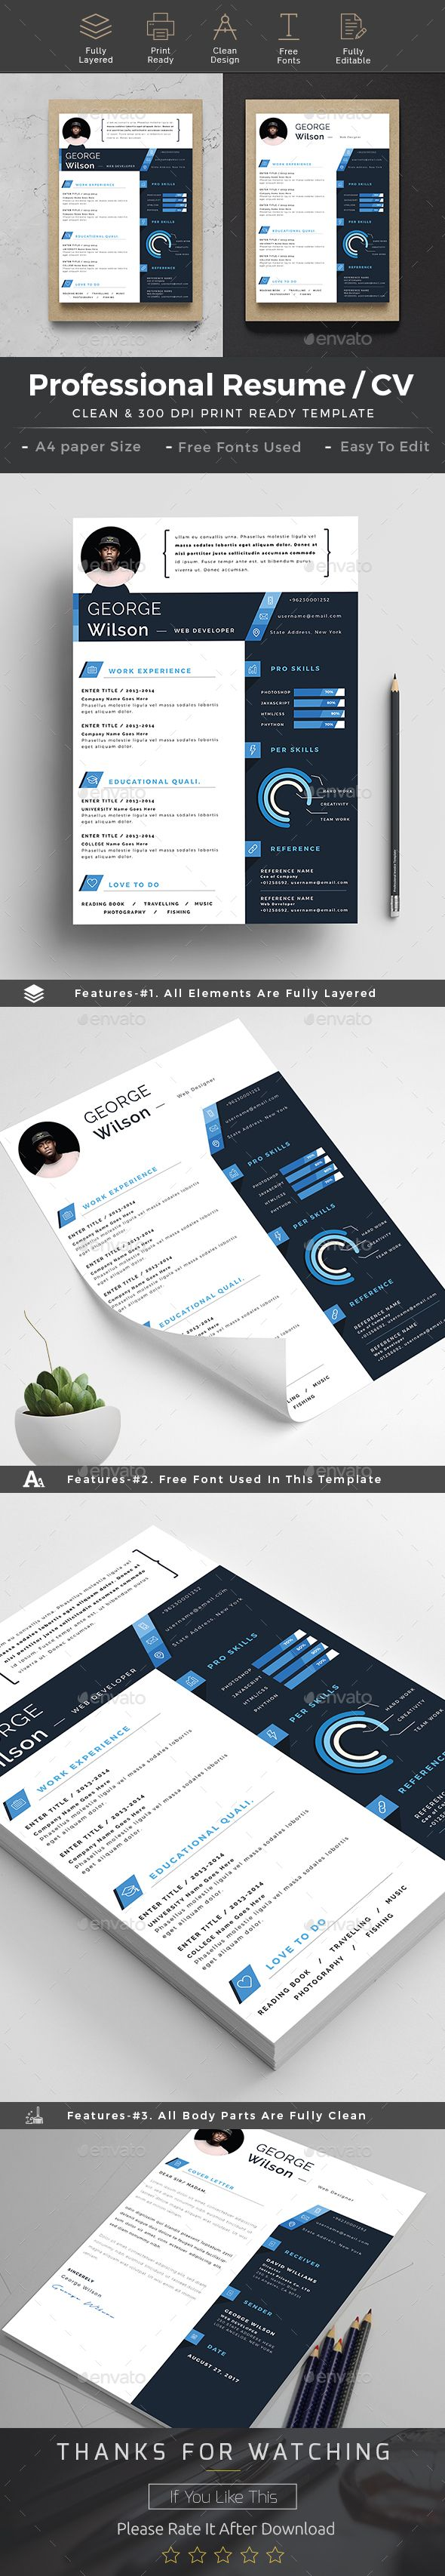 Free Resume Guide 2017 with Amazing Tips and Examples